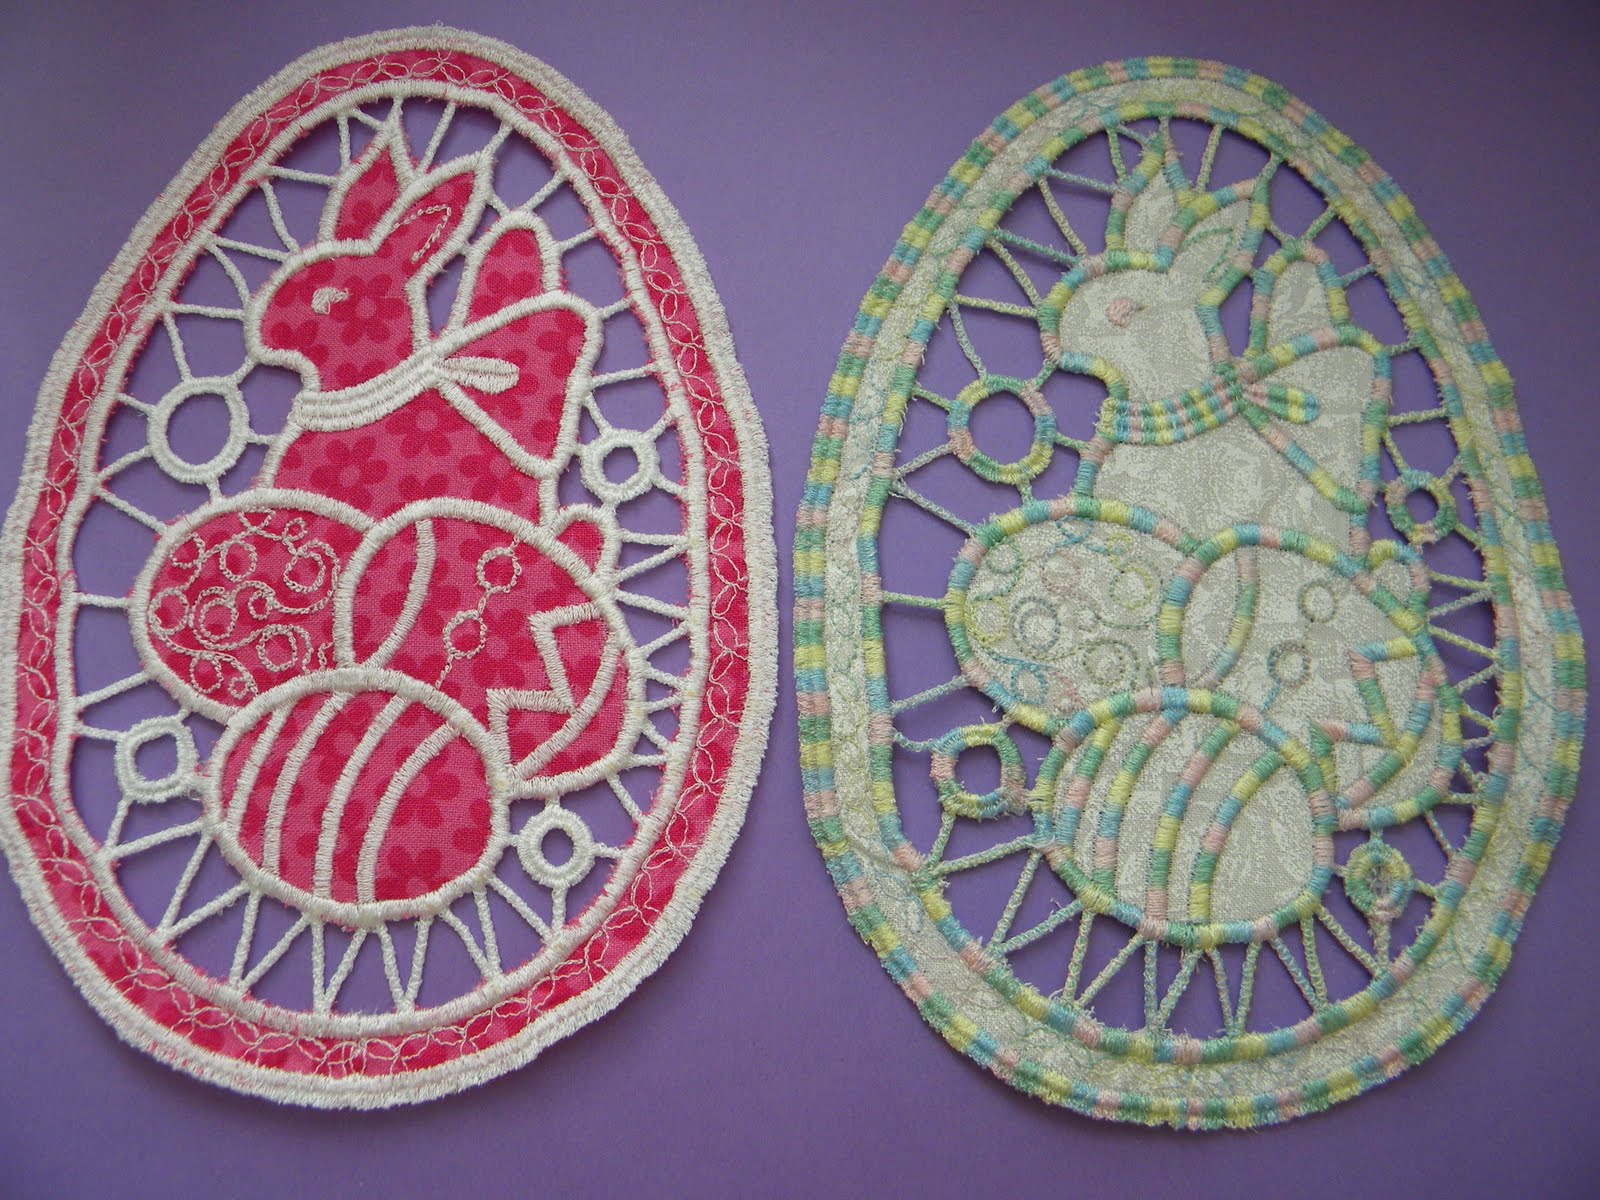 Machine embroidery know more about it bored art